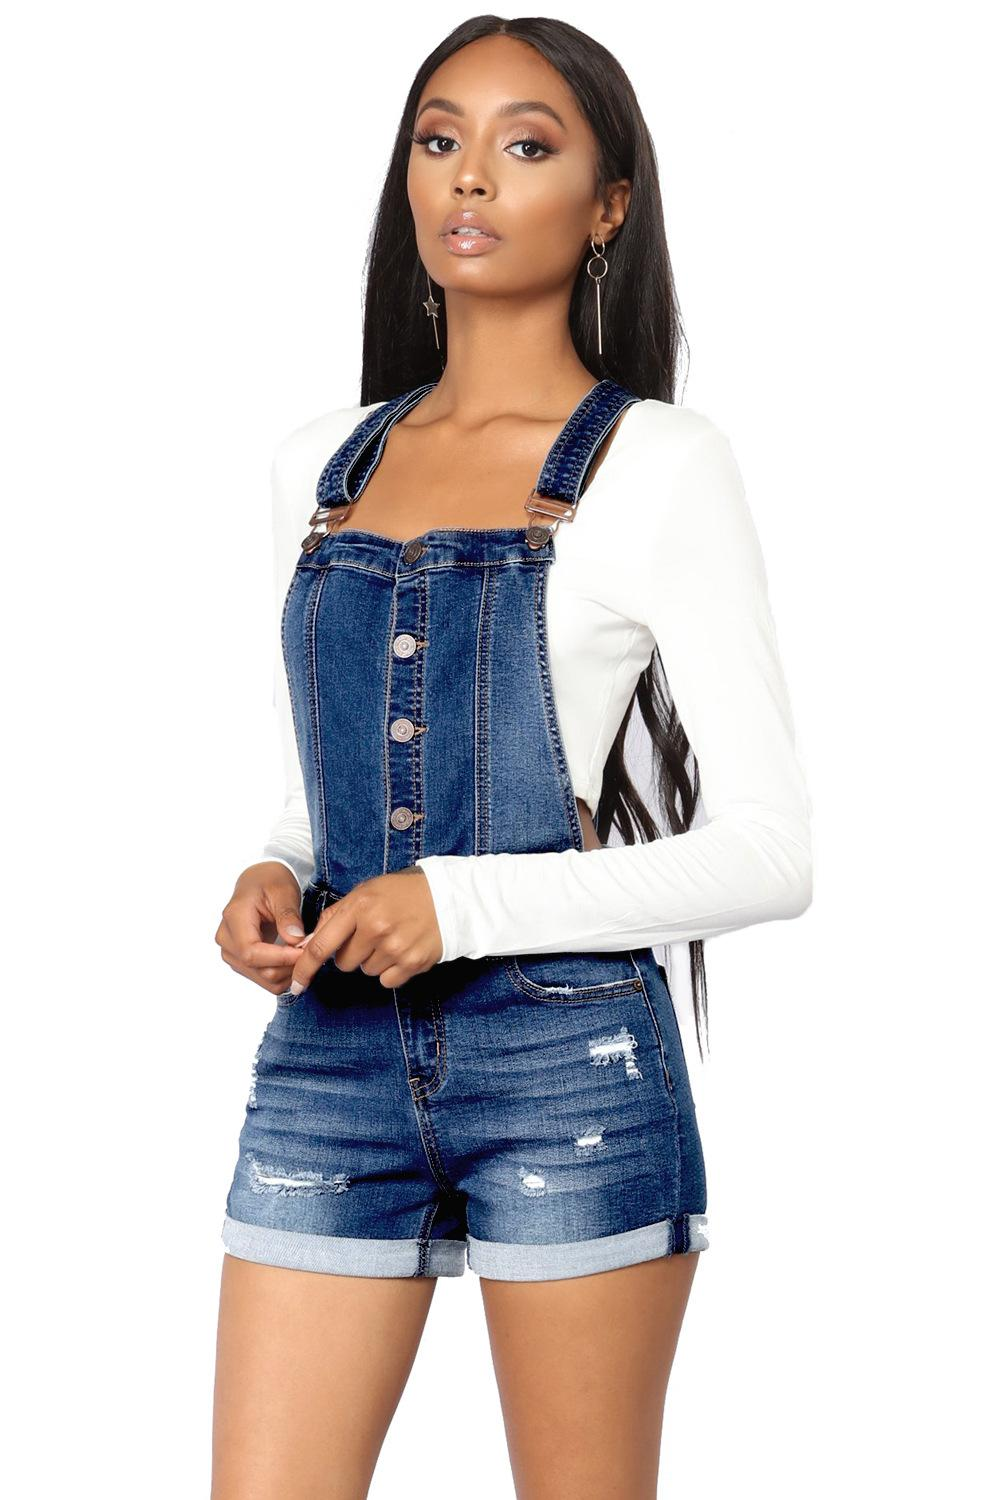 Women Summer Denim Bib Overalls Jeans Shorts Jumpsuits and Rompers Playsuit 2